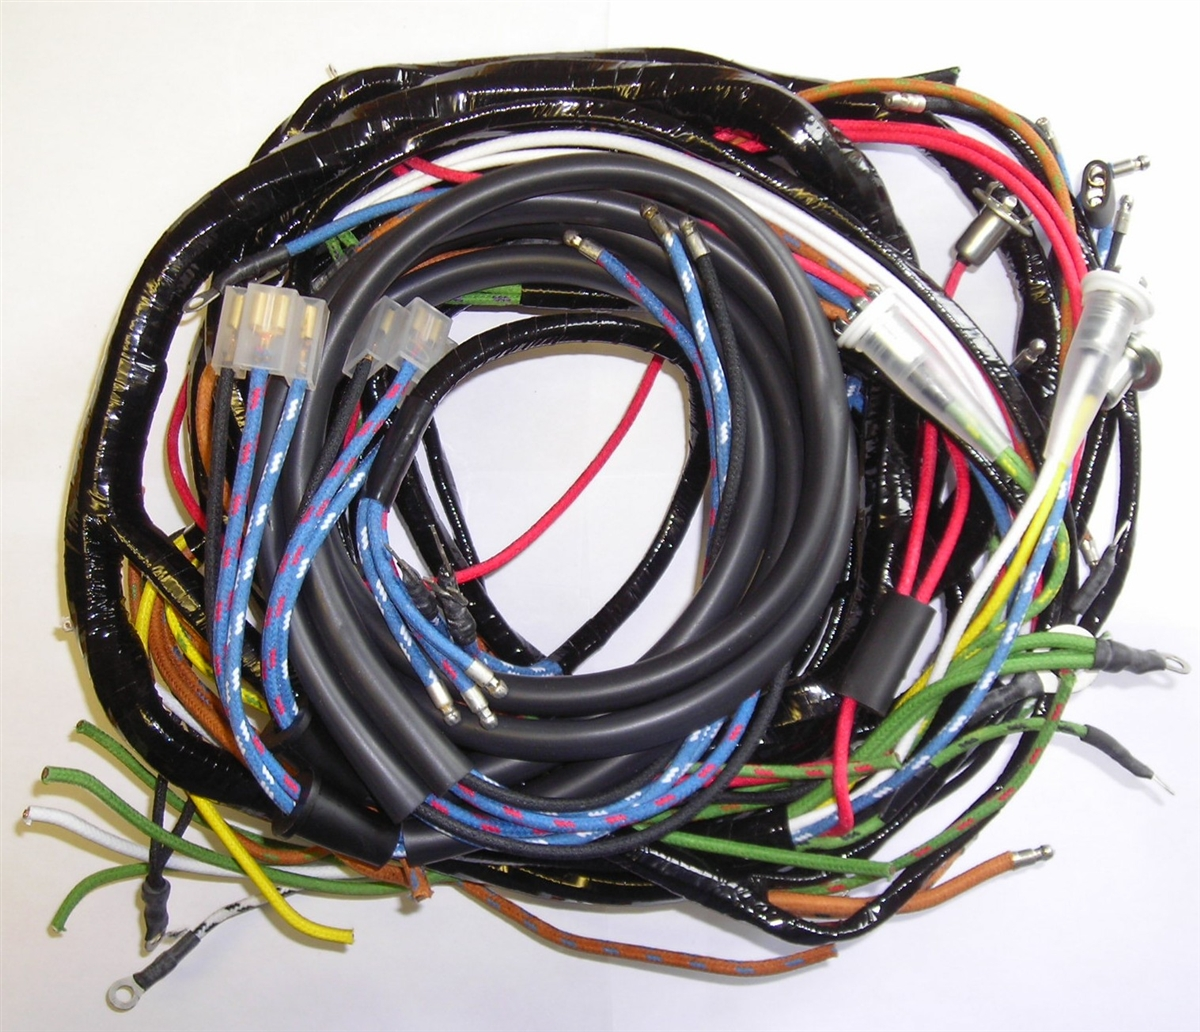 57 61 metropolitan main wiring harness rh britishwiring com main wiring harness nh tn75a main wiring harness for 2009 flhtp